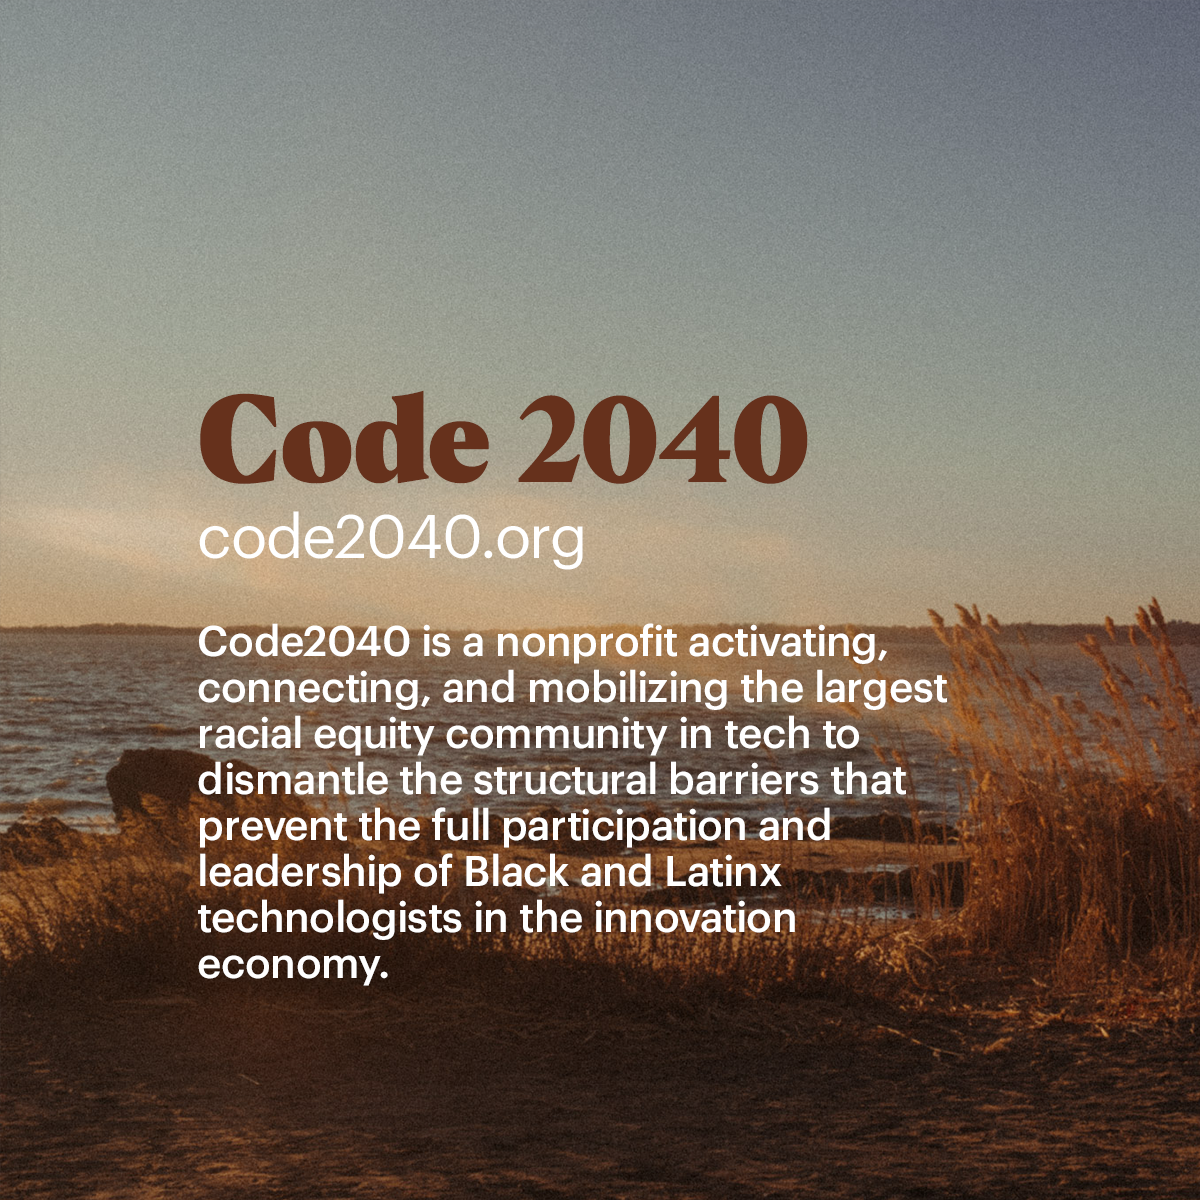 Code 2040 Code2040 is a nonprofit activating,  connecting, and mobilizing the largest  racial equity community in tech to  dismantle the structural barriers that  prevent the full participation and  leadership of Black and Latinx  technologists in the innovation  economy.